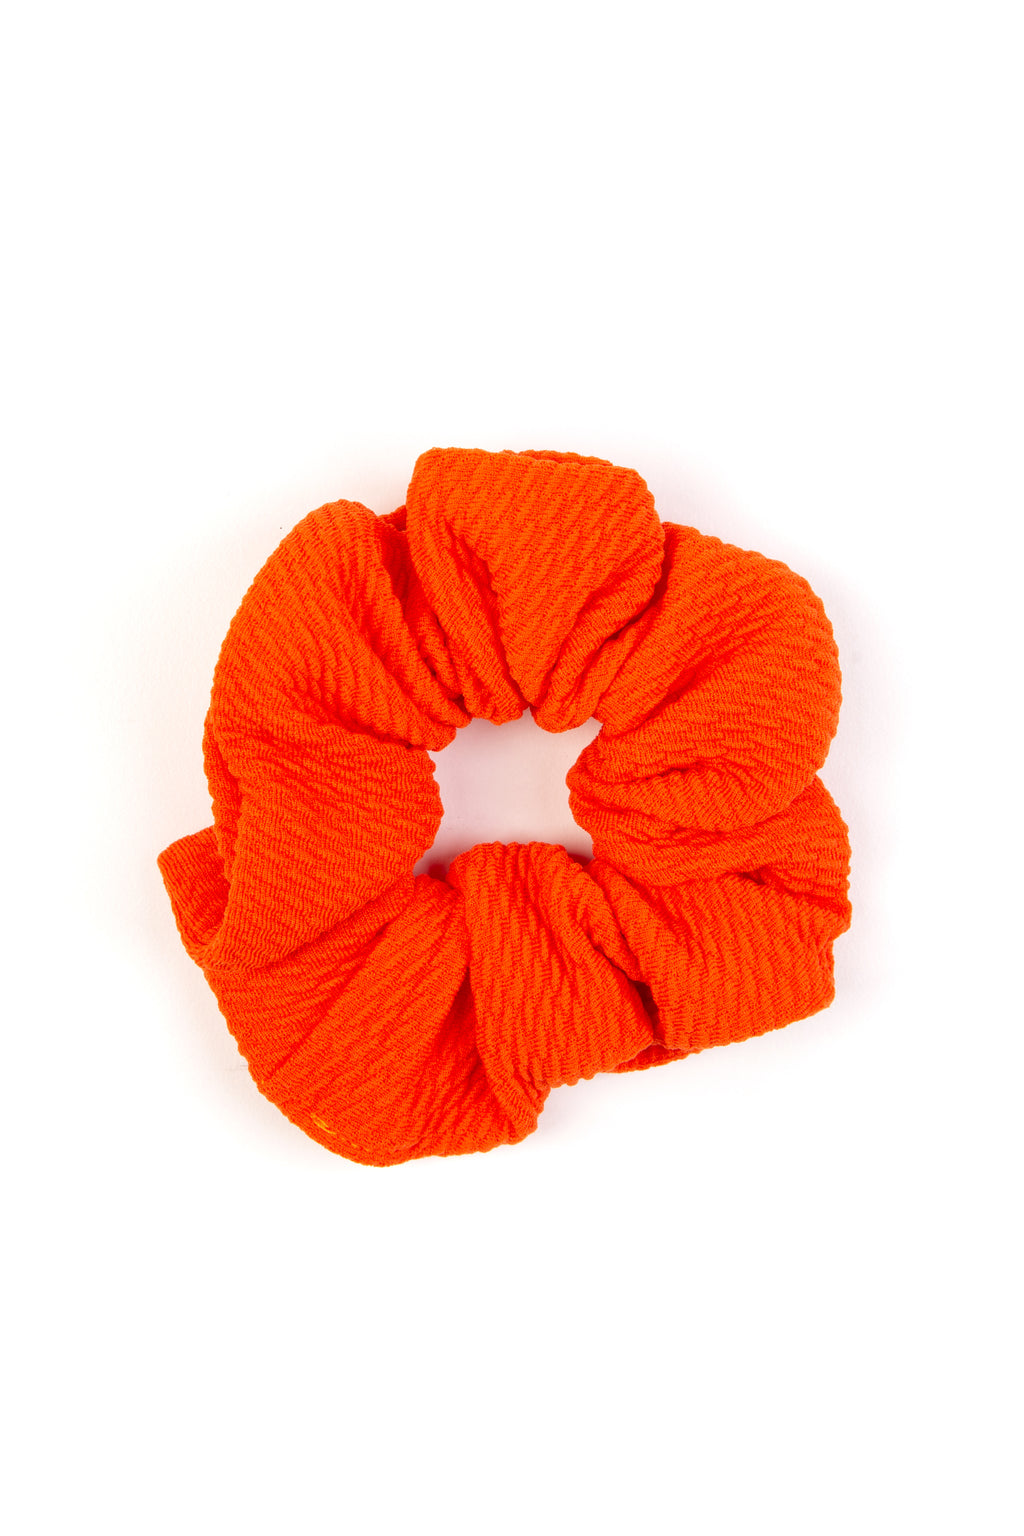 The Blood Orange Scrunchie Reduced